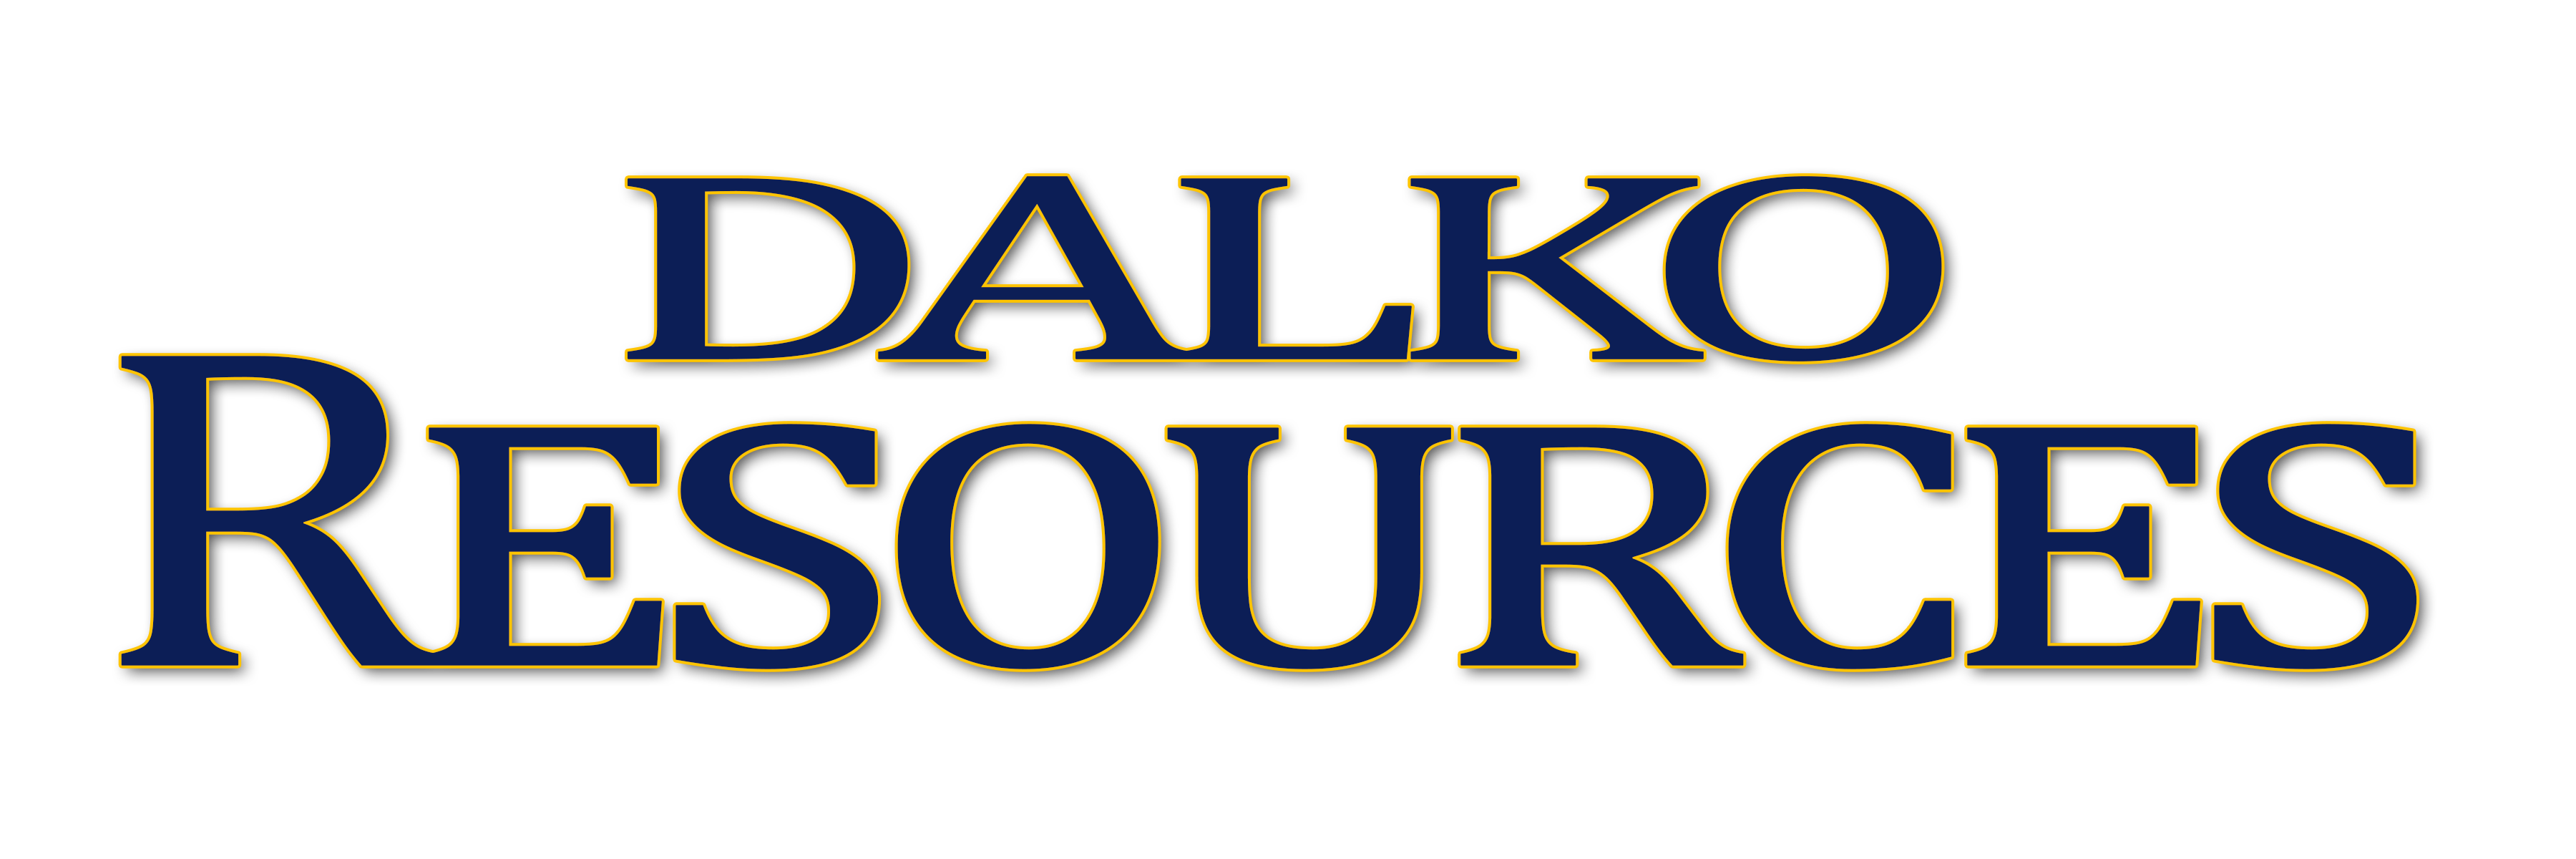 Dalko Resources Inc.